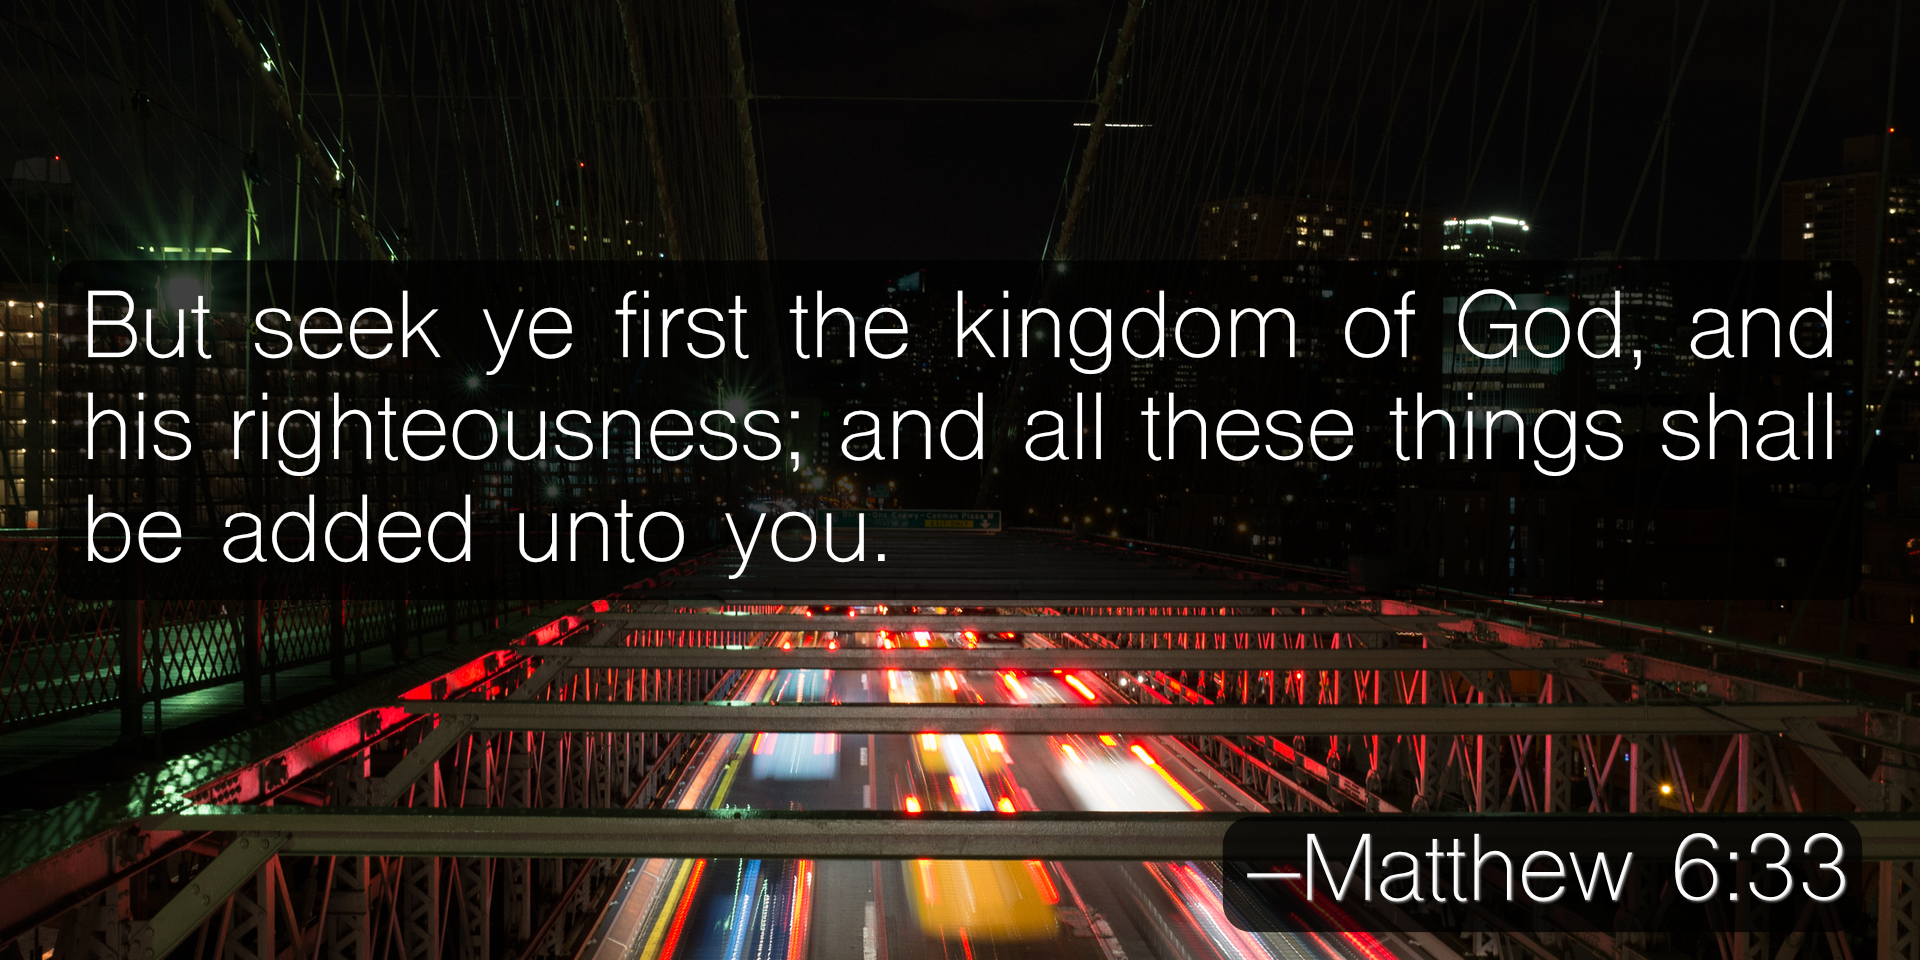 But seek ye first the kingdom of God, and his righteousness; and all these things shall be added unto you. –Matthew 6:33